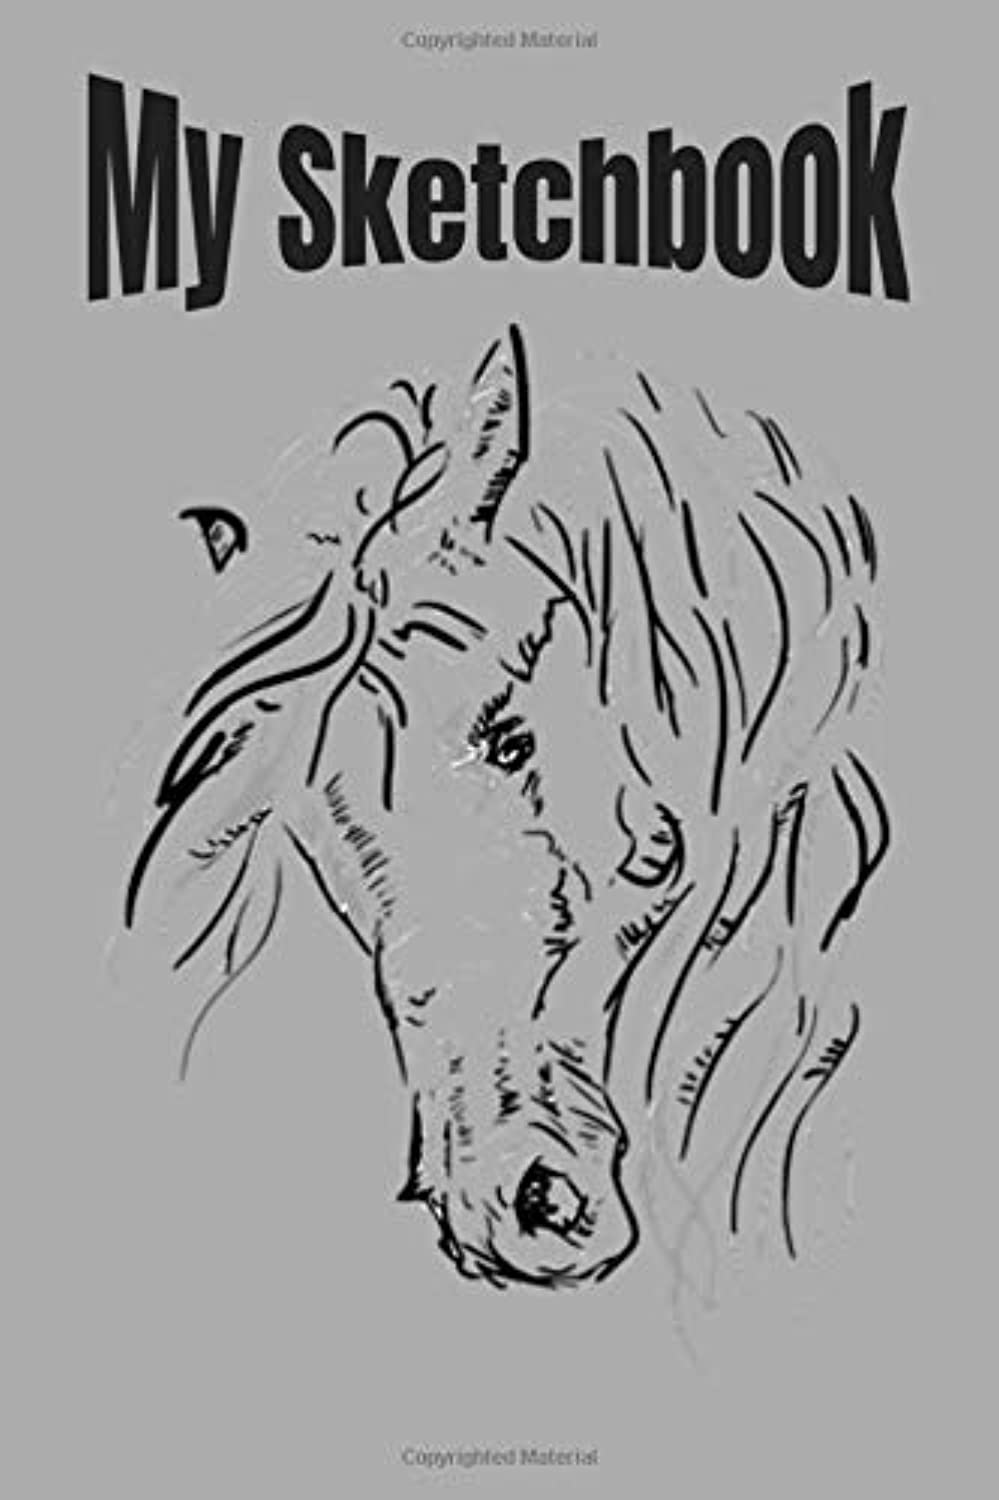 My Sketchbook: A place to showcase your artwork umcwfu1997458